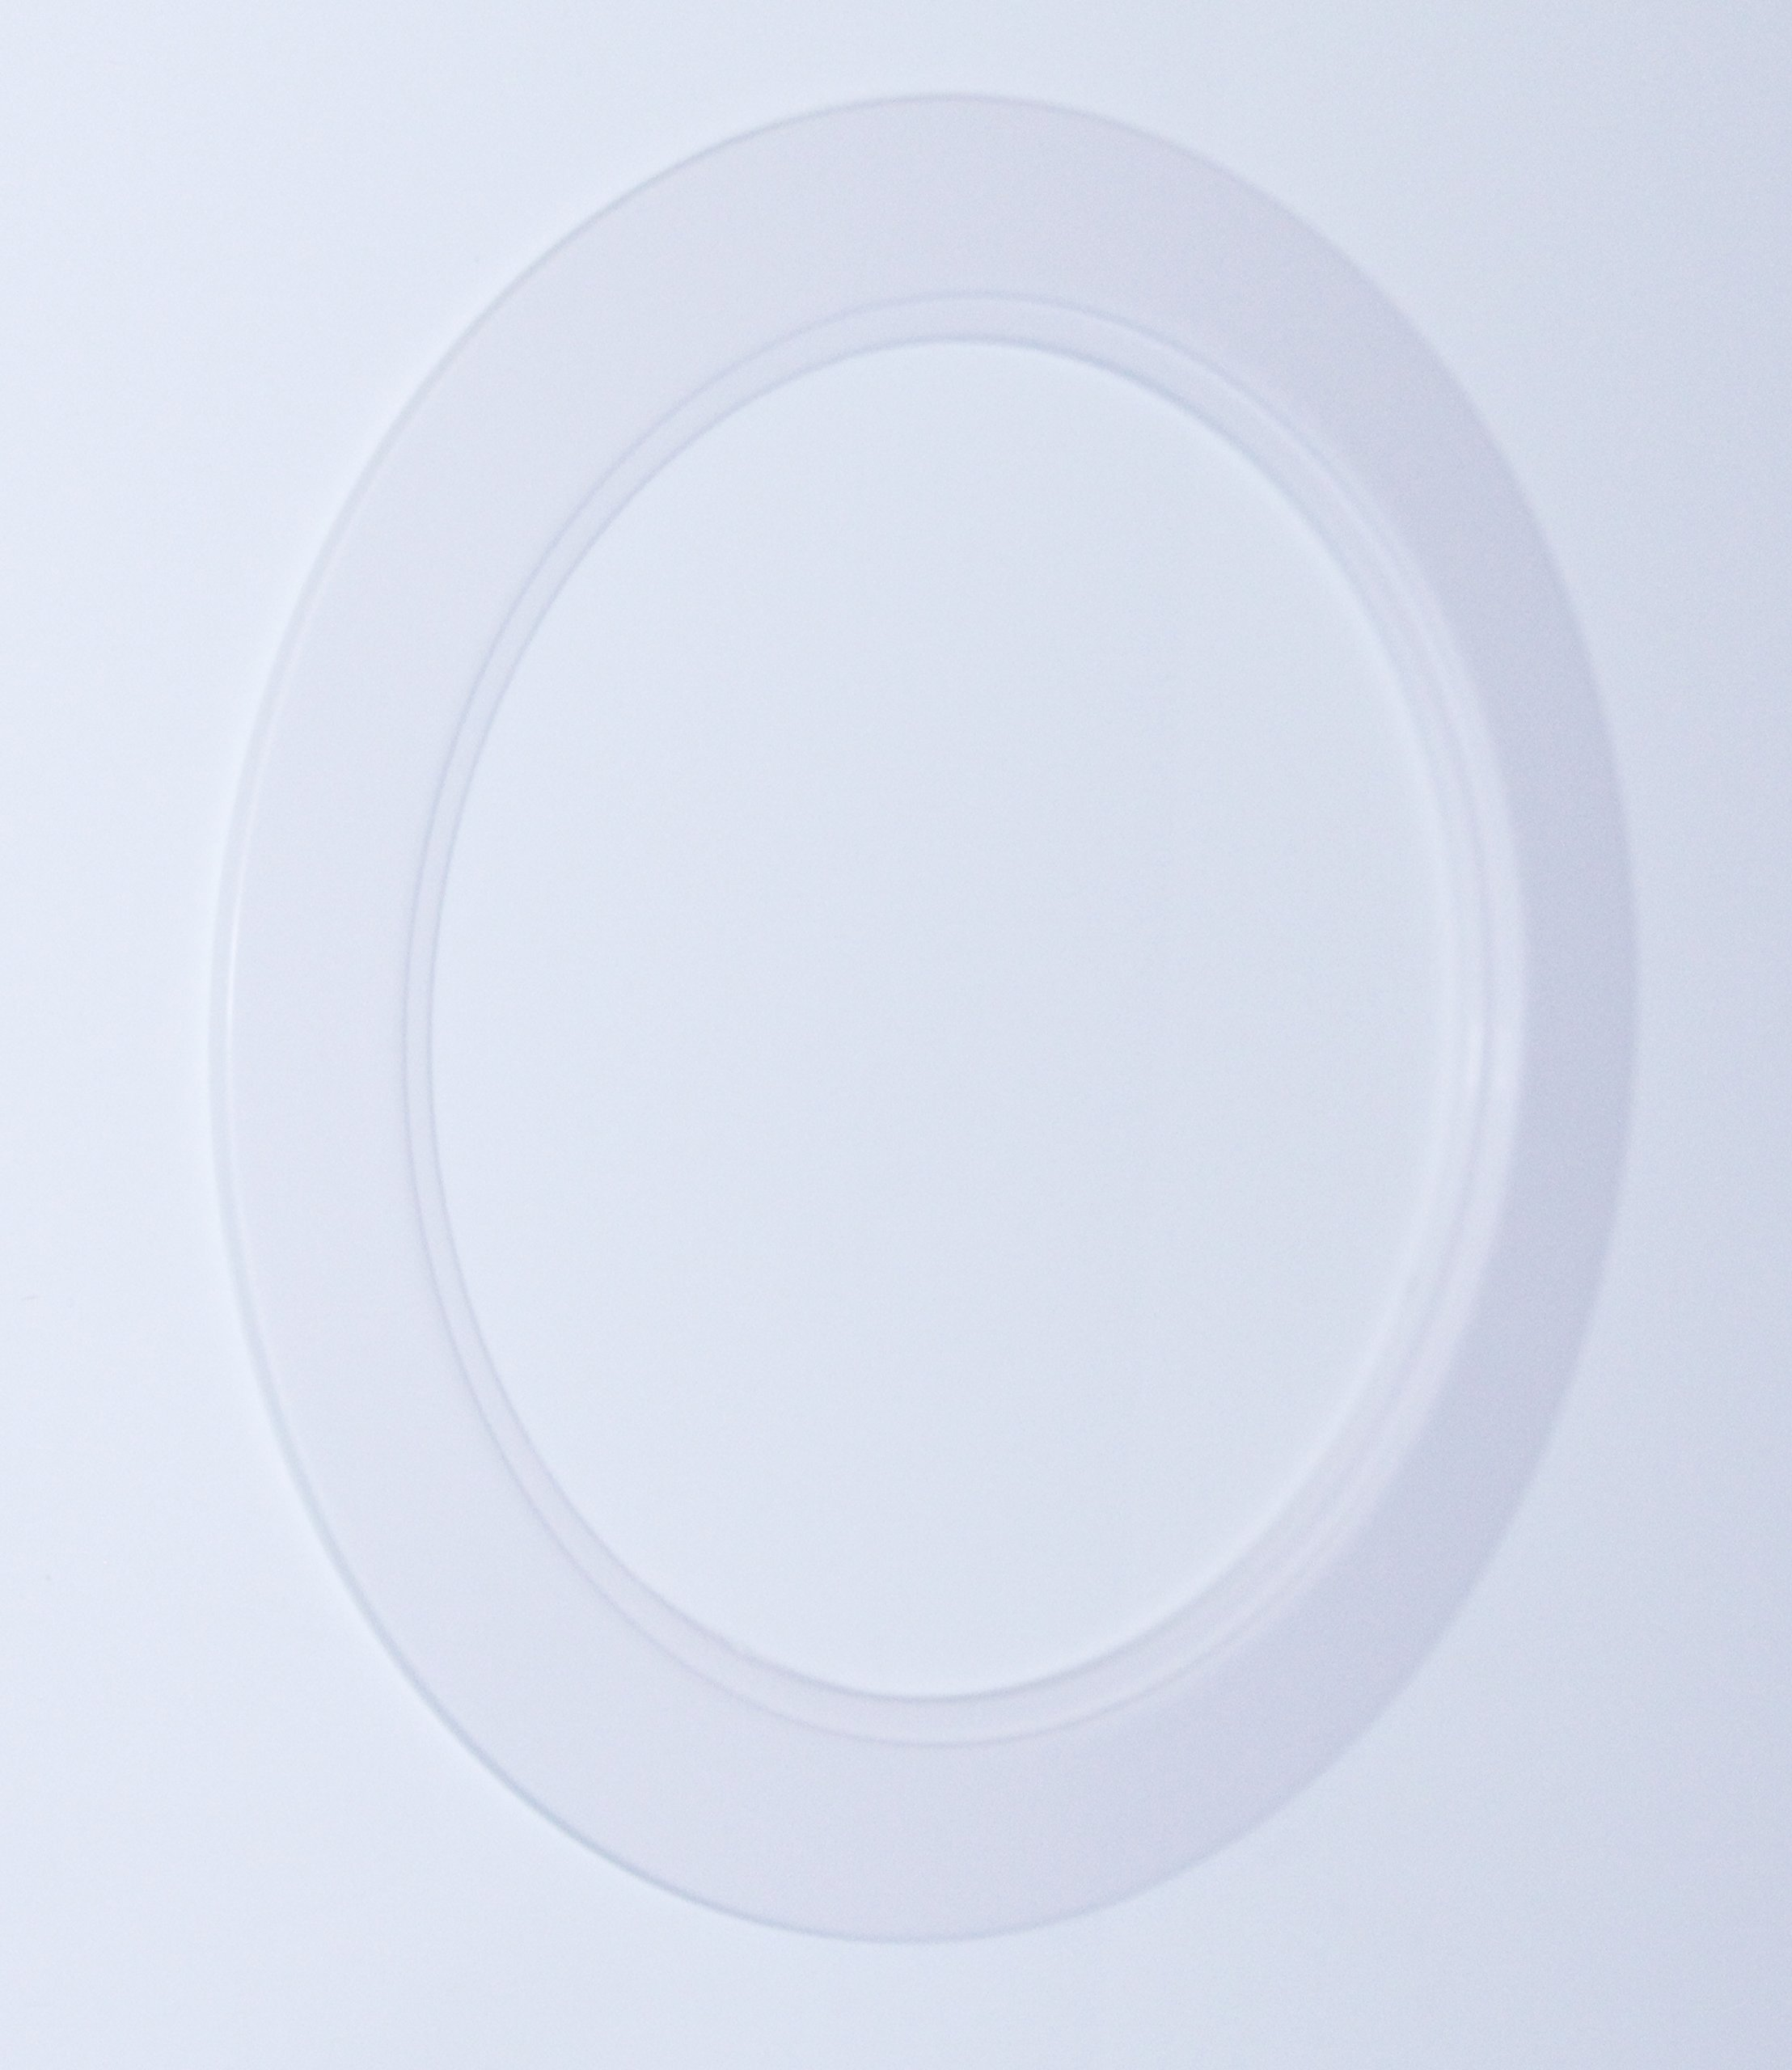 10 Pack-White Light Trim Ring Recessed Can 6'' Inch Over Size Oversized Lighting Fixture